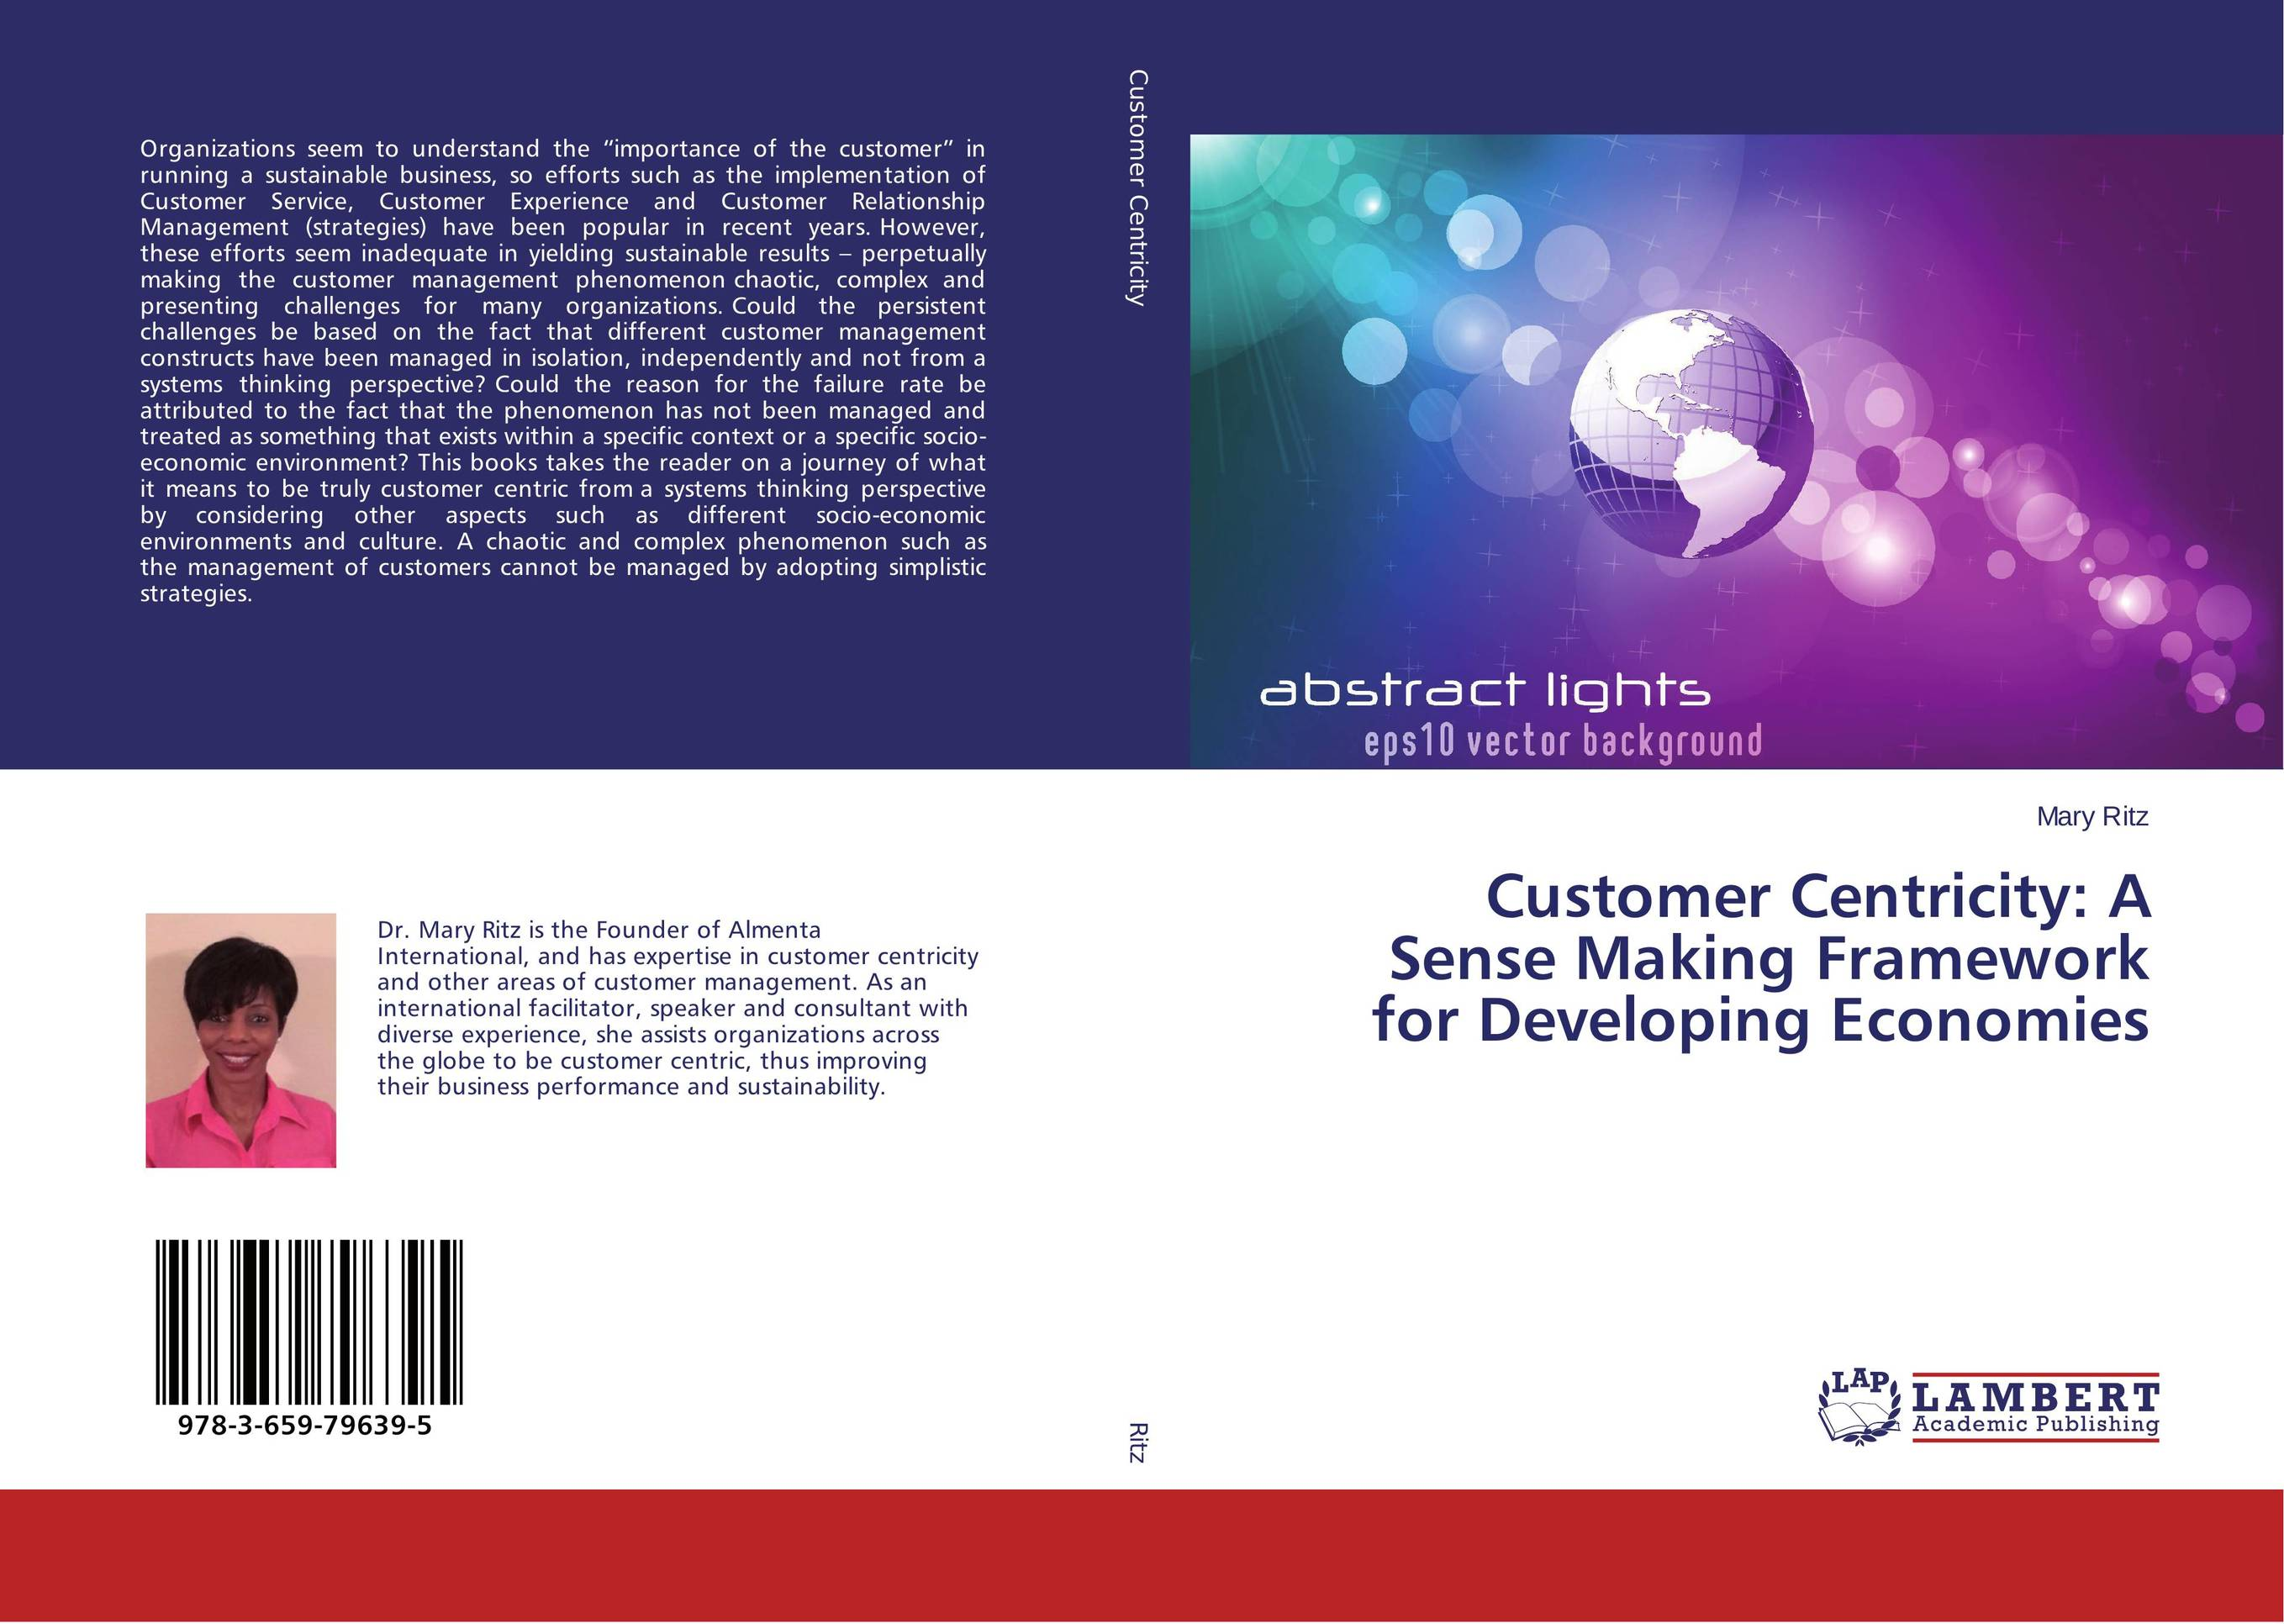 Customer Centricity: A Sense Making Framework for Developing Economies avinash kaushik web analytics 2 0 the art of online accountability and science of customer centricity